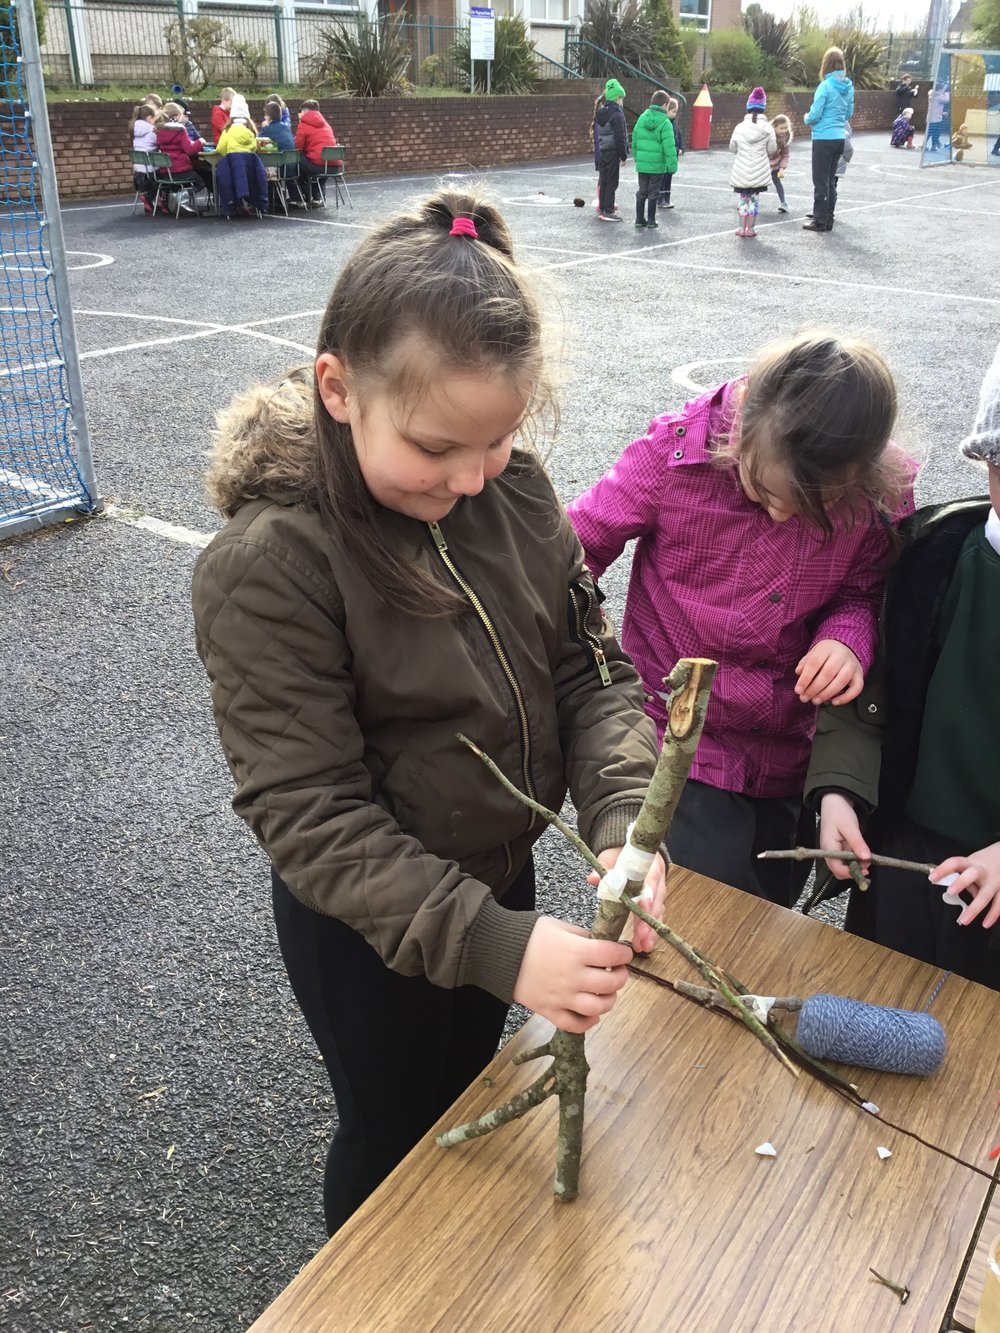 Kirsty working on her stick man.